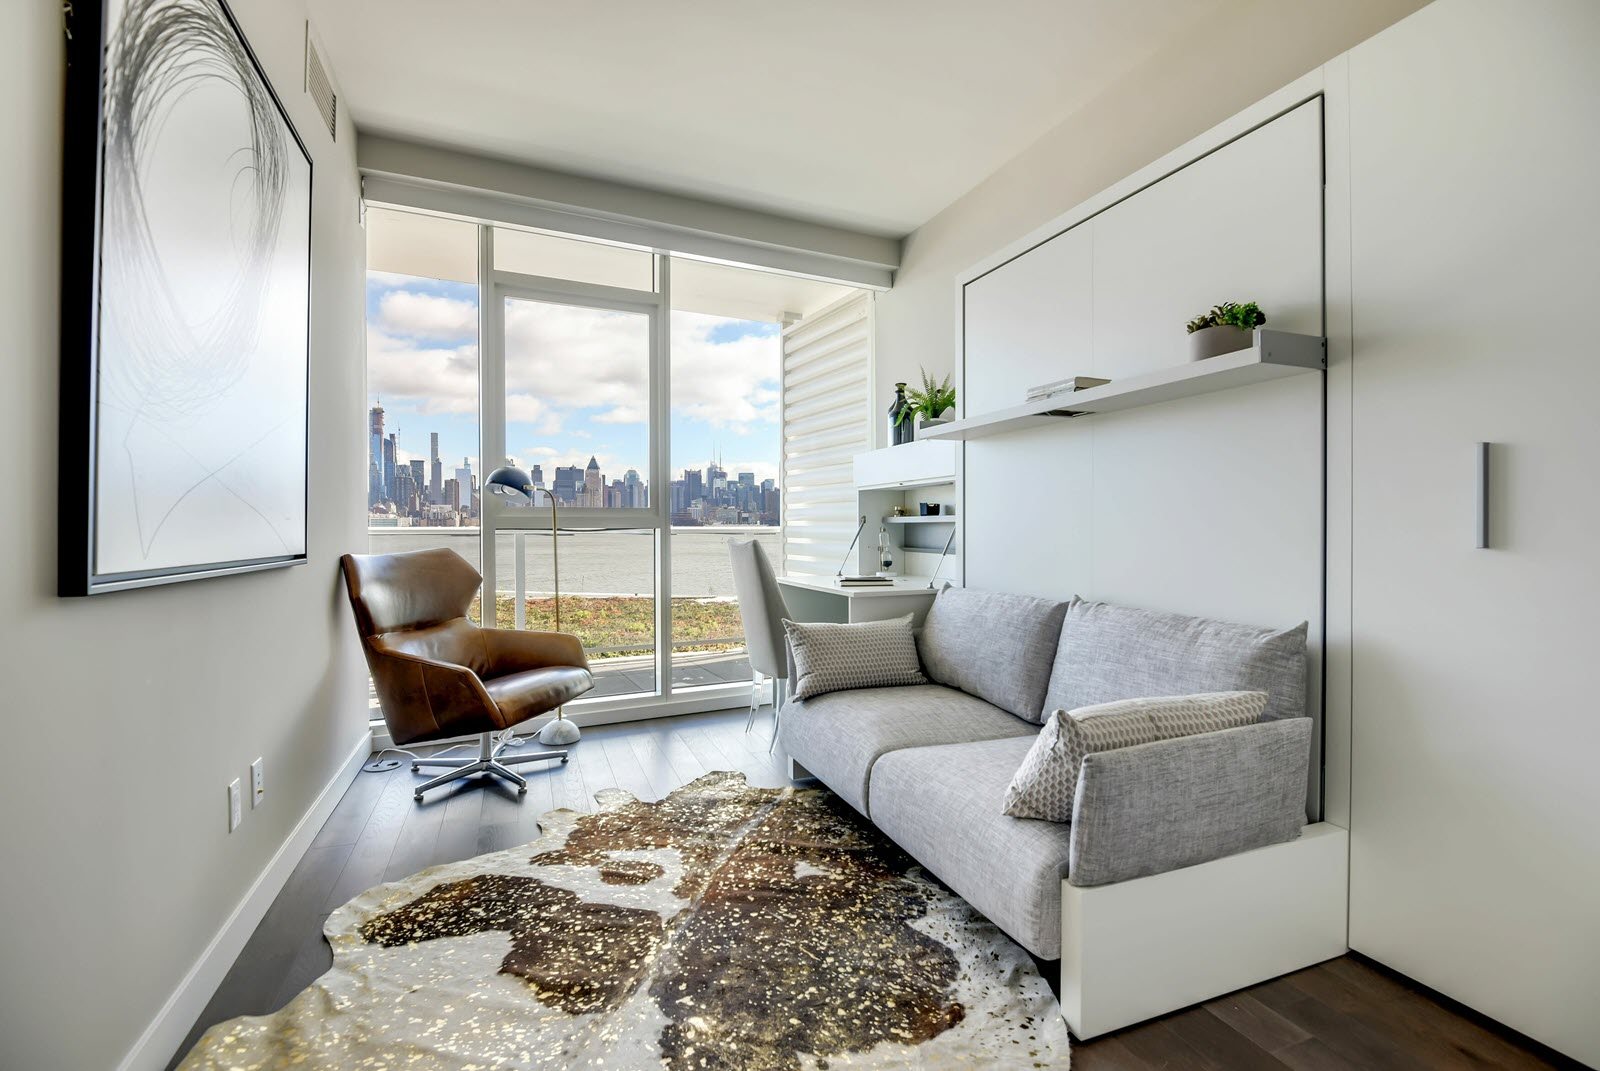 A small but luxurious <i>pied á terre</i>-style apartment at the Avora in Weehawken, New Jersey, looking out over the New York City skyline.